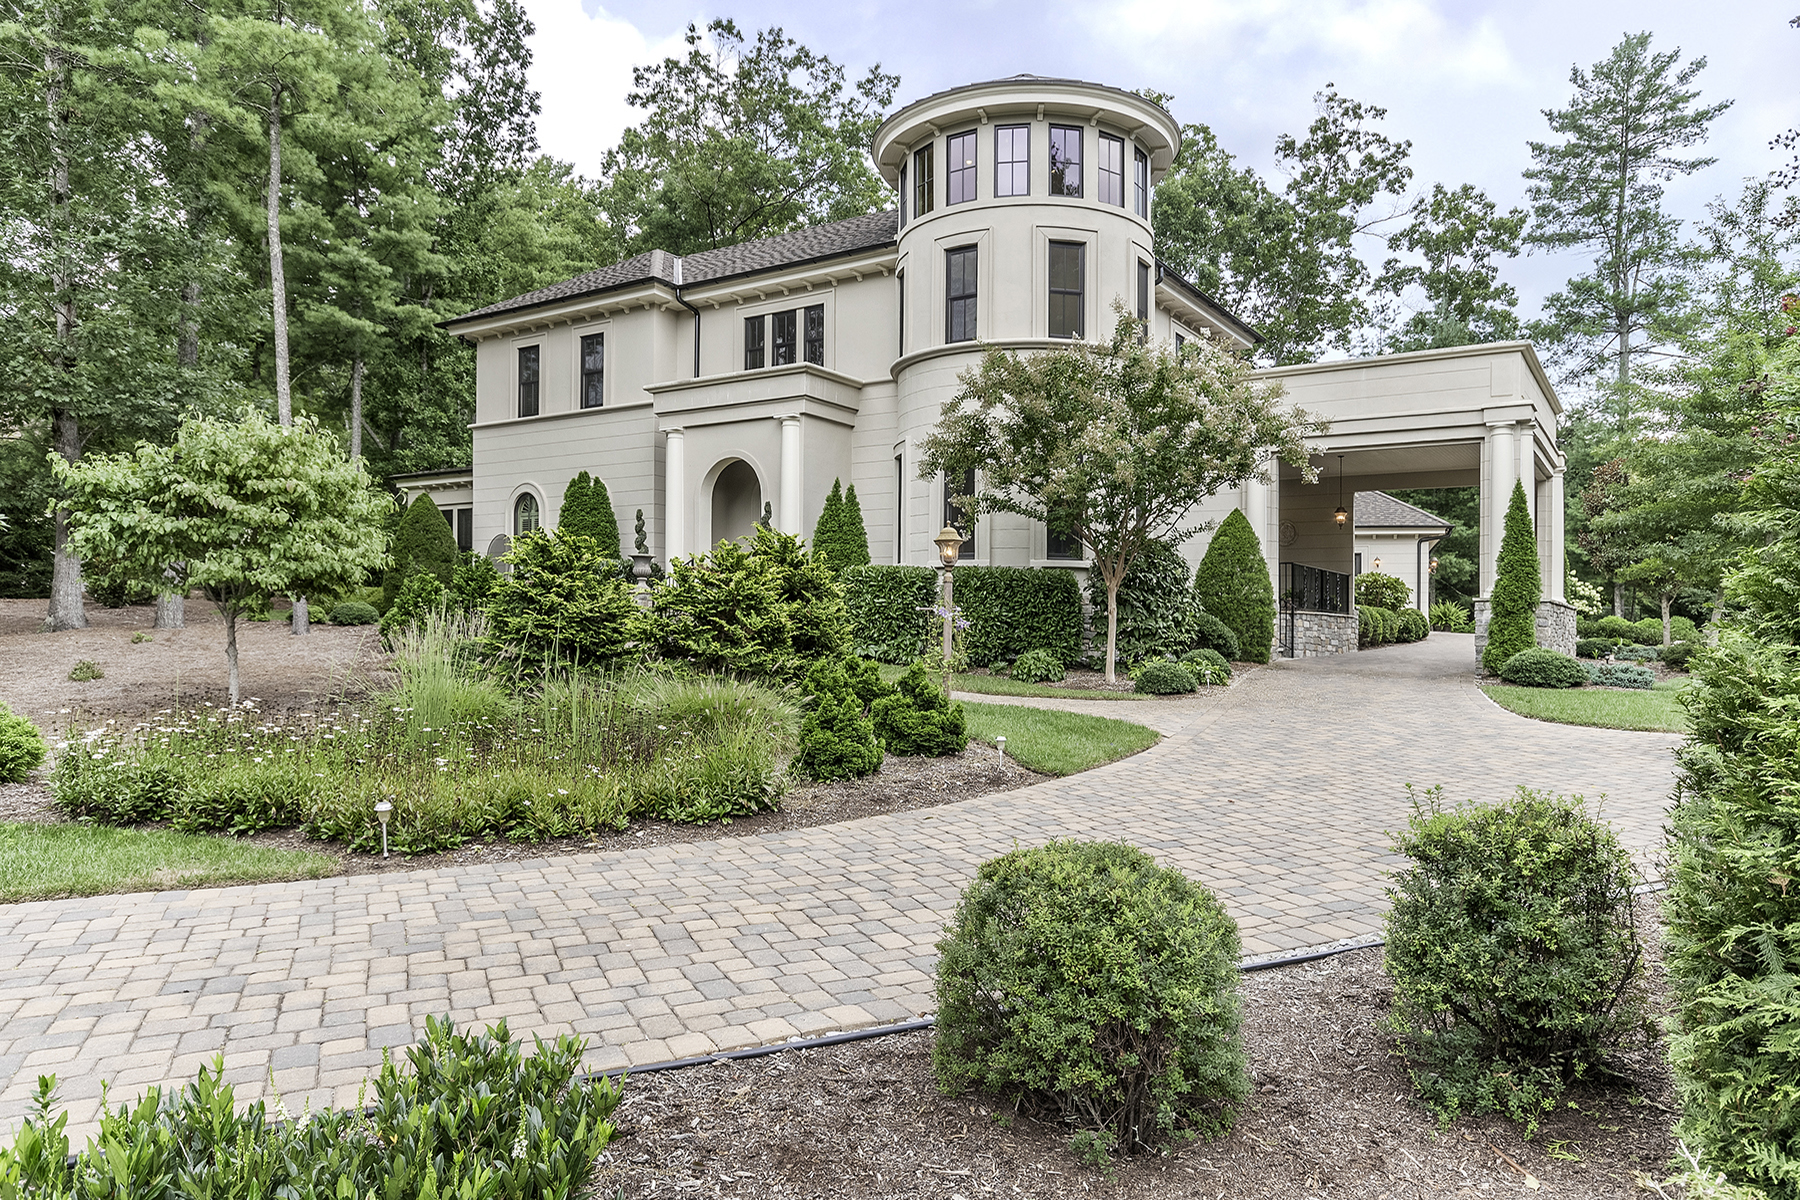 Single Family Home for Sale at RAMBLE BILTMORE FOREST 45 Chauncey Cir Asheville, North Carolina, 28803 United States